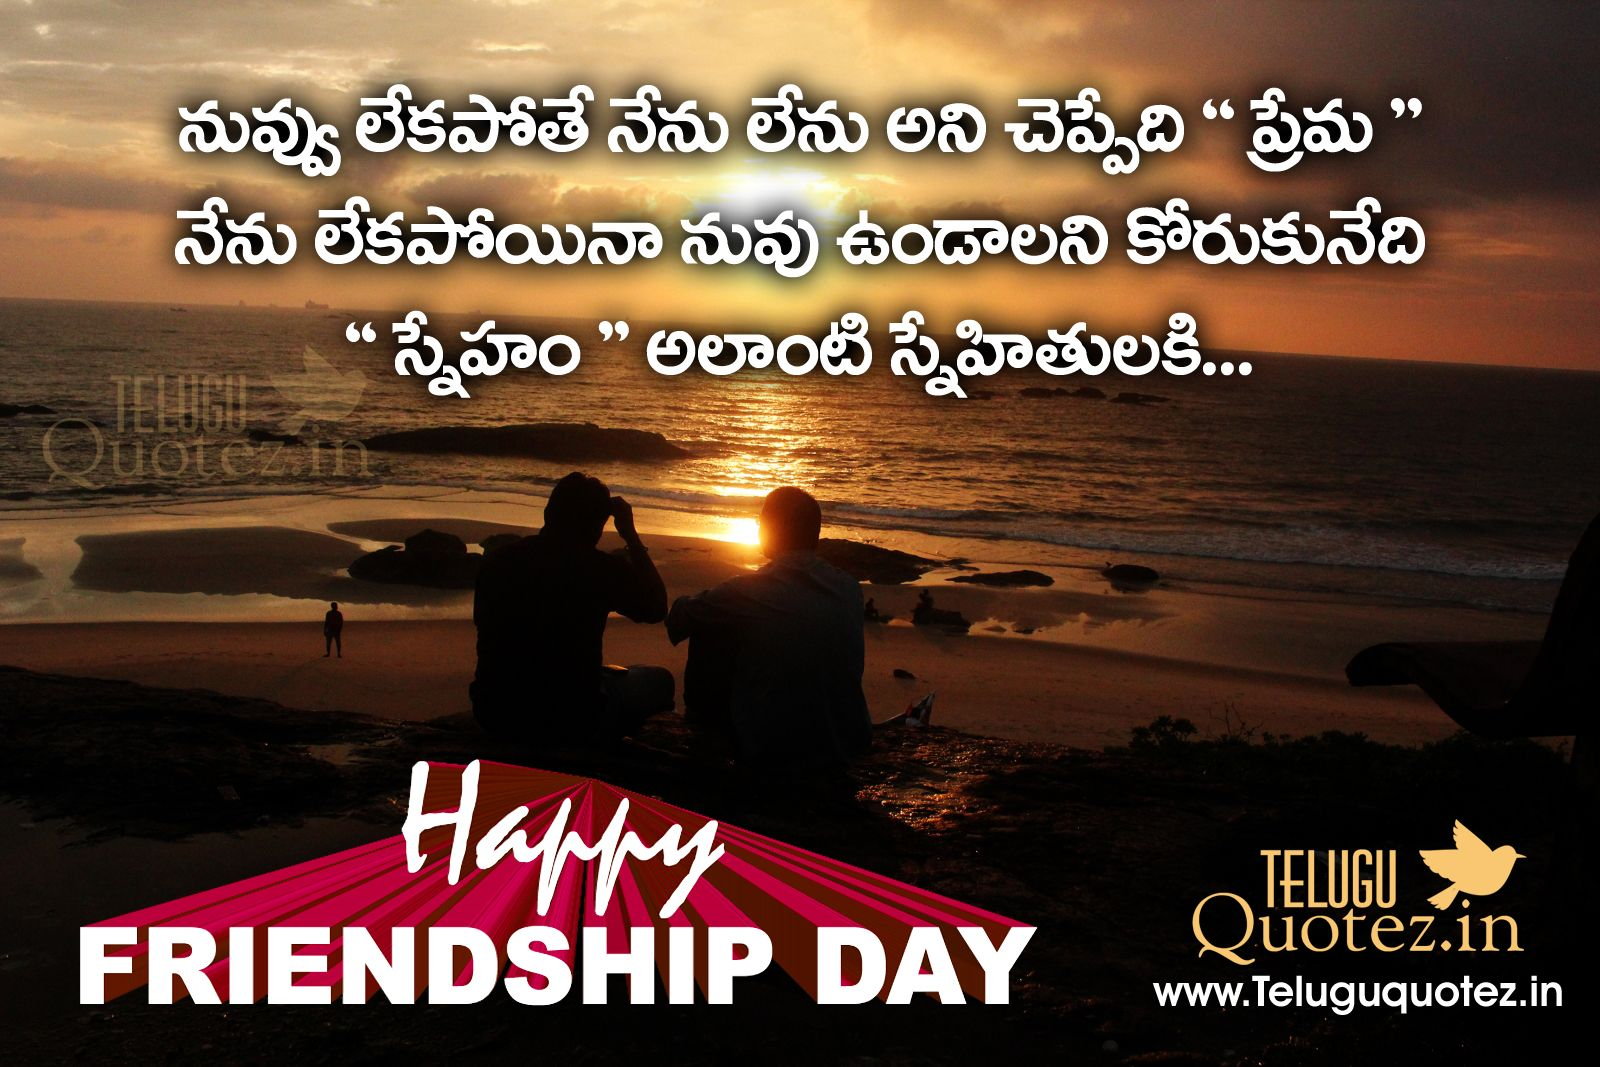 Happy Friendship Day Telugu Picture Free Quotes Images